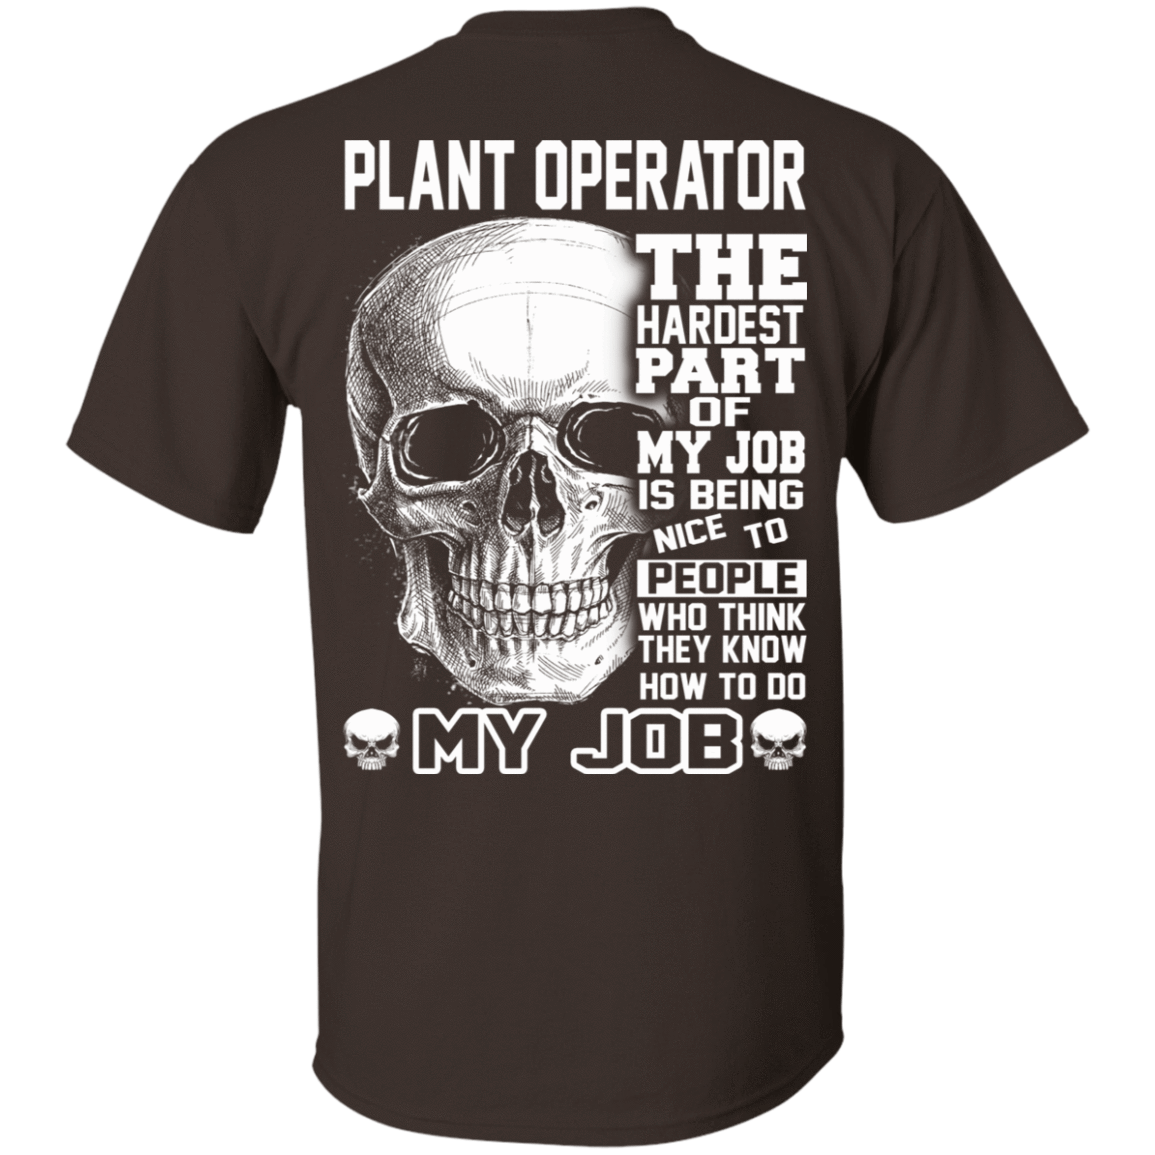 Plant Operator The Hardest Part Of My Job 22-2283-71609215-12087 - Tee Ript